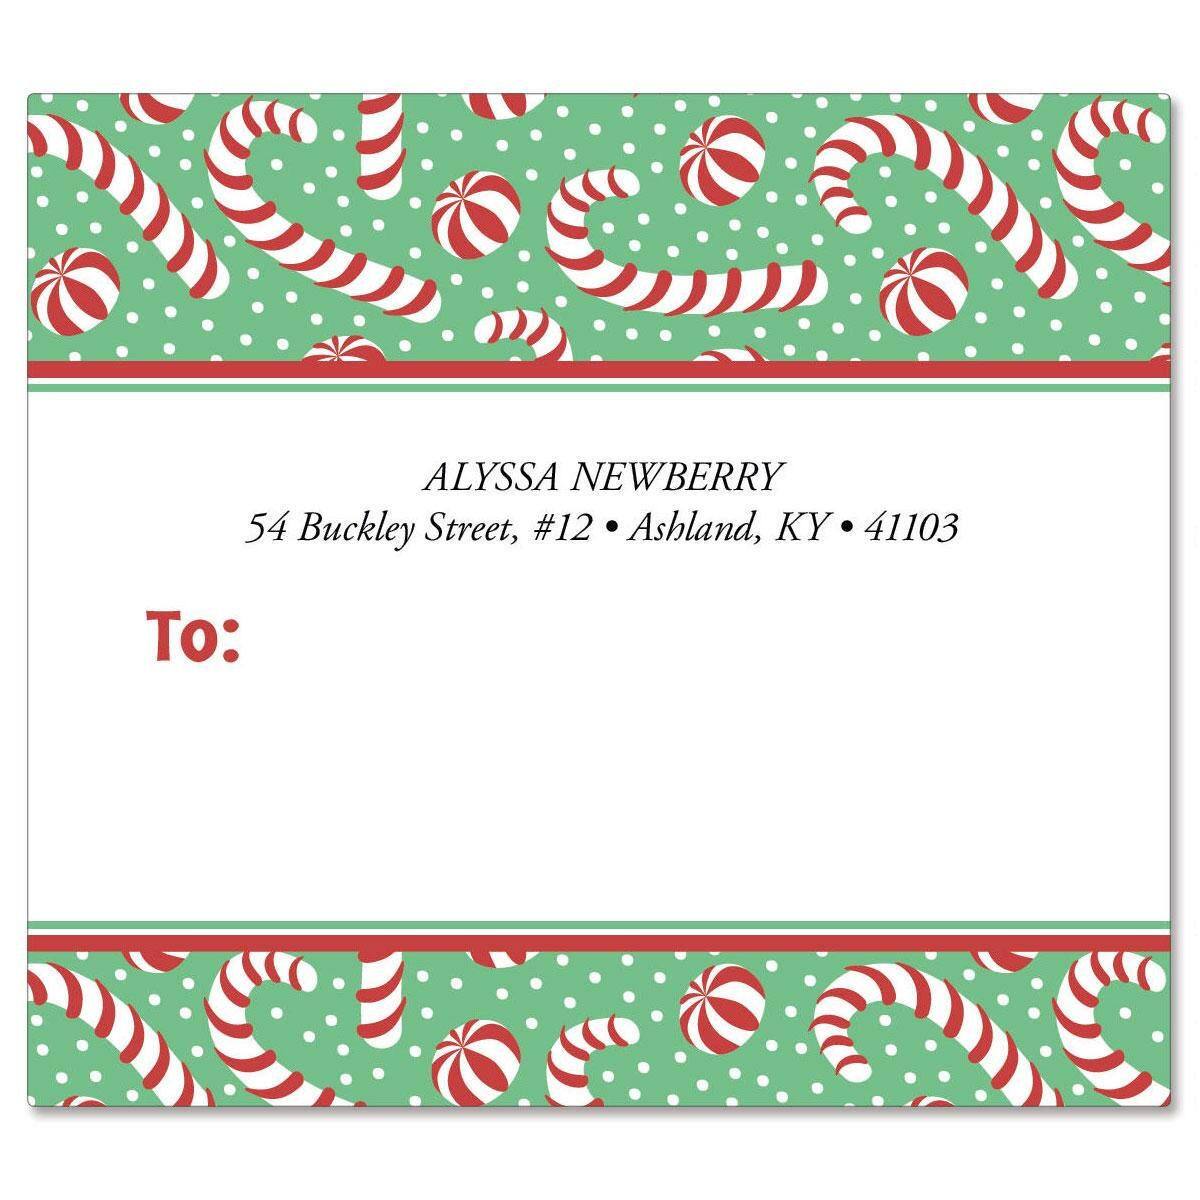 Jolly Candy Canes Mailing Package Label